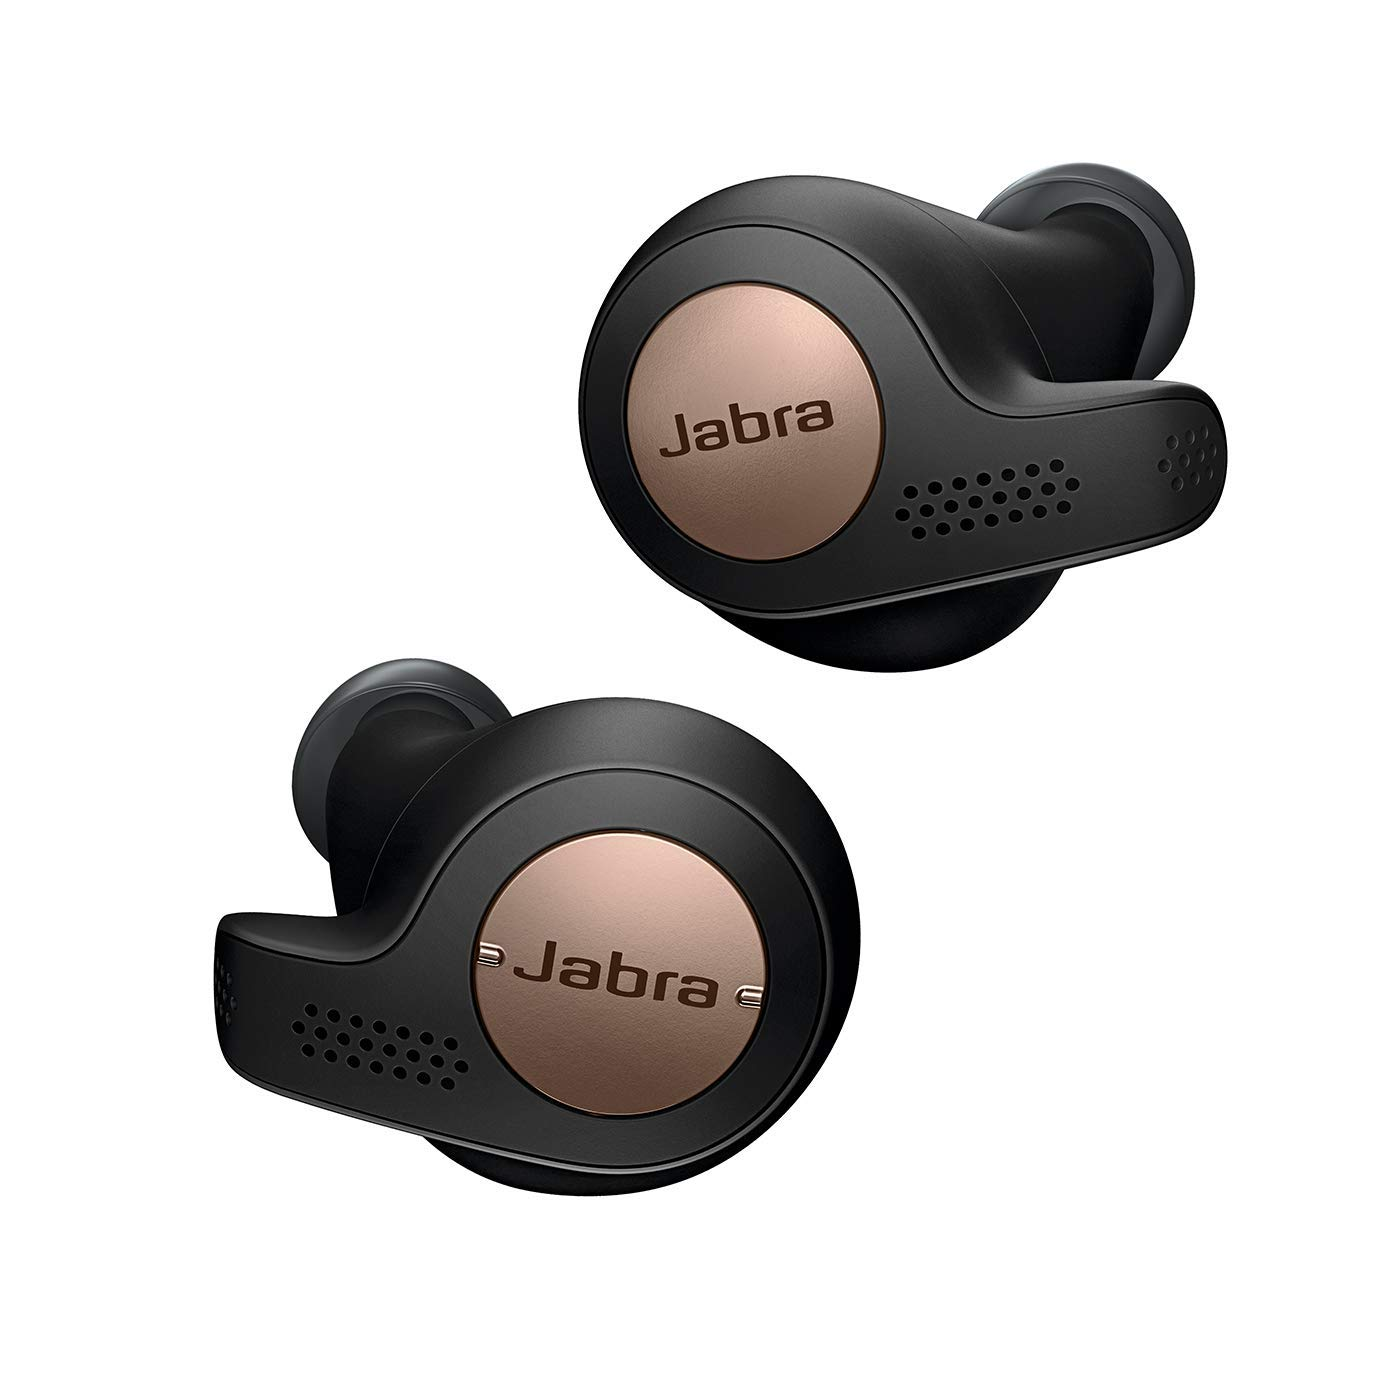 Jabra Elite Active 65t Earbuds True Wireless Earbuds with Charging Case, Copper Black Bluetooth Earbuds with a Secure Fit and Superior Sound, Long Battery Life and More Renewed